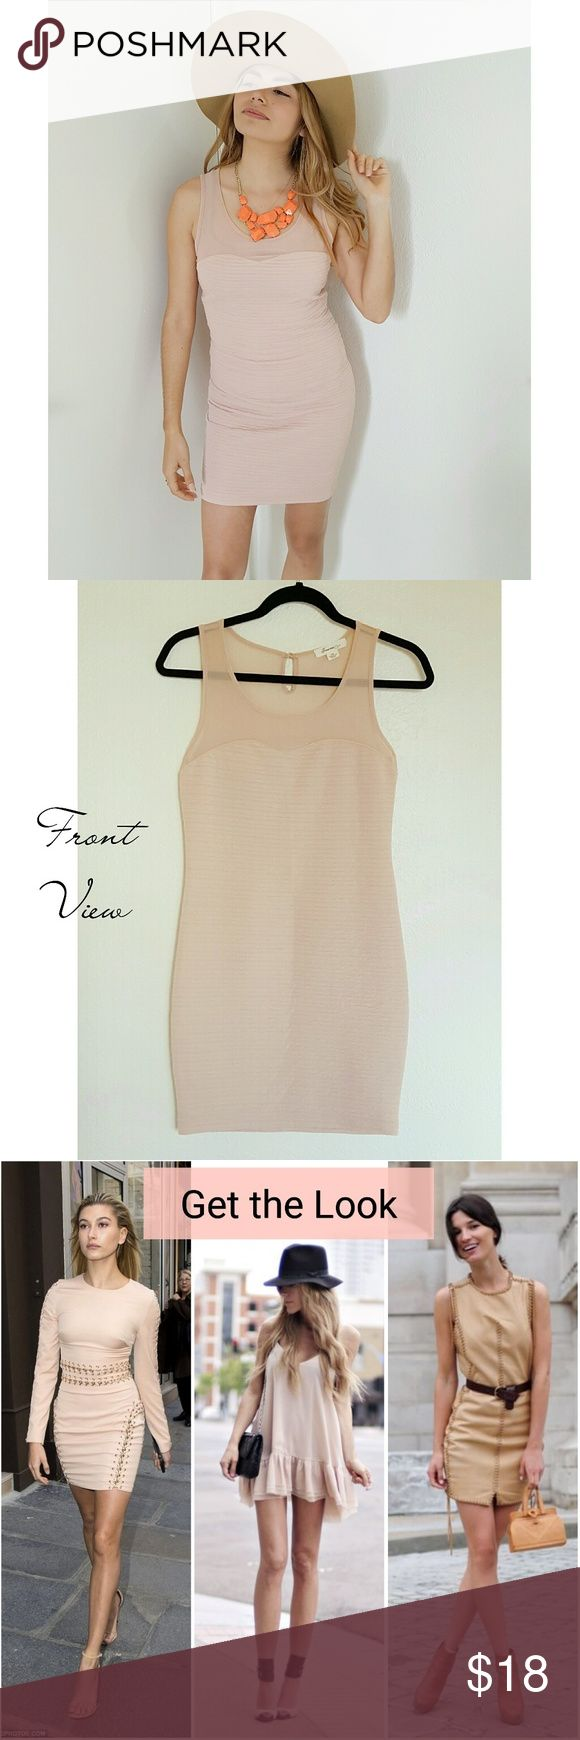 💋2x HP💋Beige Bodycon Dress ~ Elegant nude/beige bodycon dress ~ Excellent neutral tone that looks great on many different skin tones ✌🏻✌✌🏽✌🏿 ~ Sheer across shoulders ~ Worn once to a bridal shower ~ In perfect condition ~ Fits a size X-Small or Small ~ Very figure flattering ~ Perfect for Valentine's Day ❤  🌻 GET THE LOOK: Photo 3 is a style inspo photos. Similar looks; Not exact item.  ❤ LIKE for price drop notifications 👍 Accepting Reasonable OFFERS 🌴 BUNDLE your likes & I'll send…